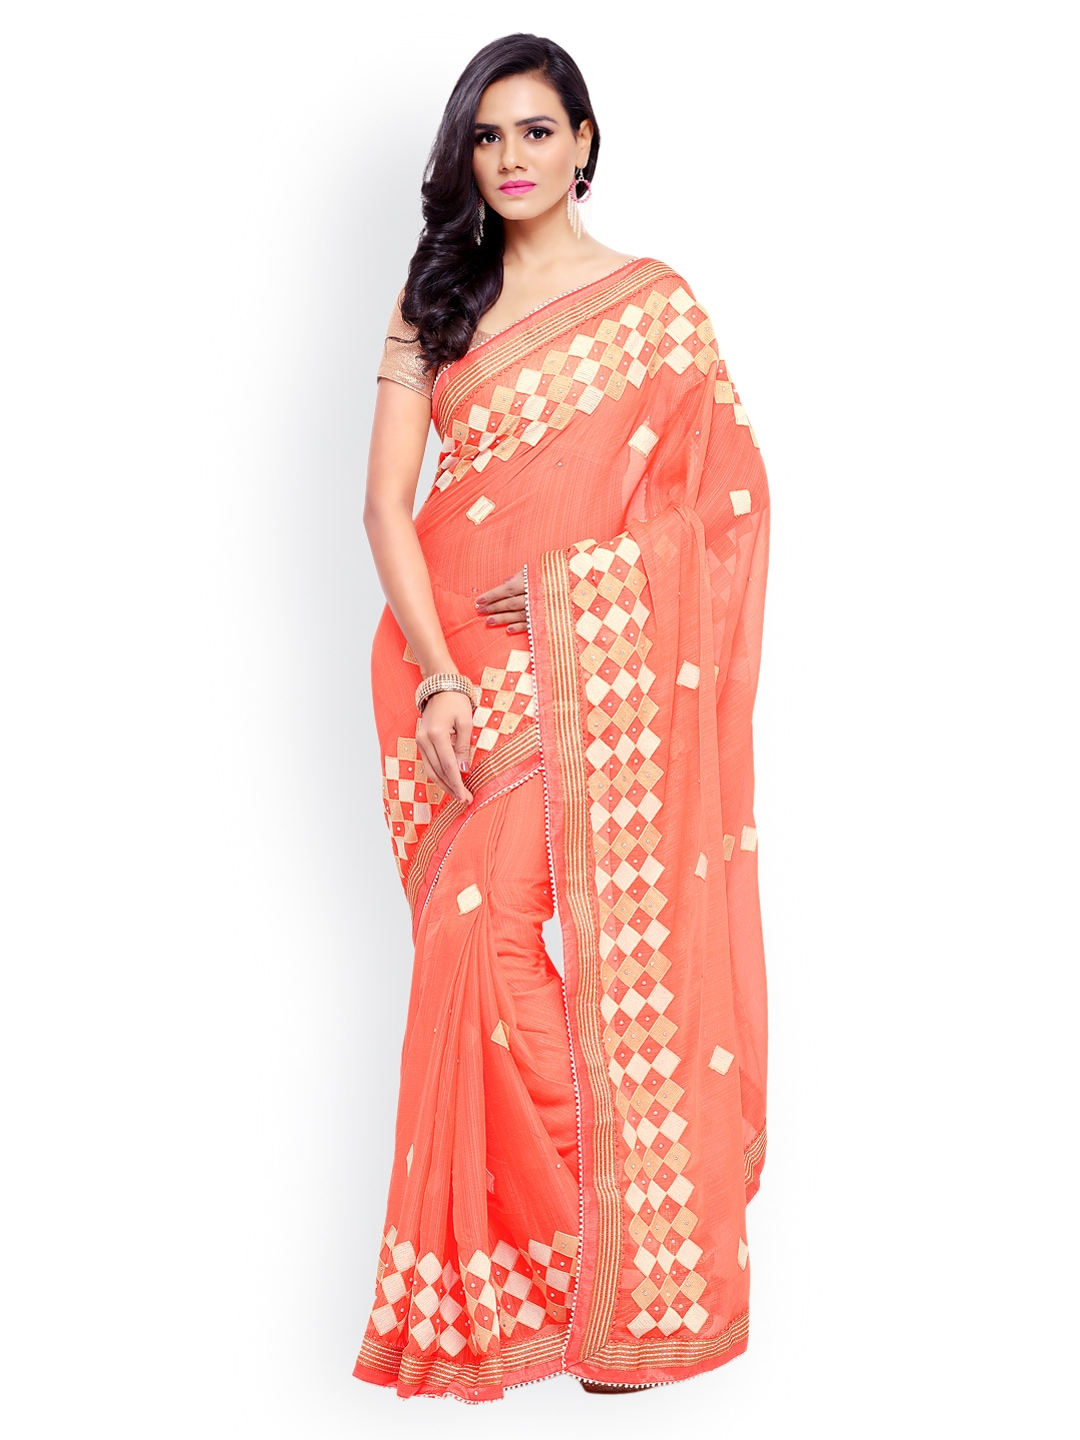 61b877059f149 Peach Saree - Buy Peach Color Sarees online